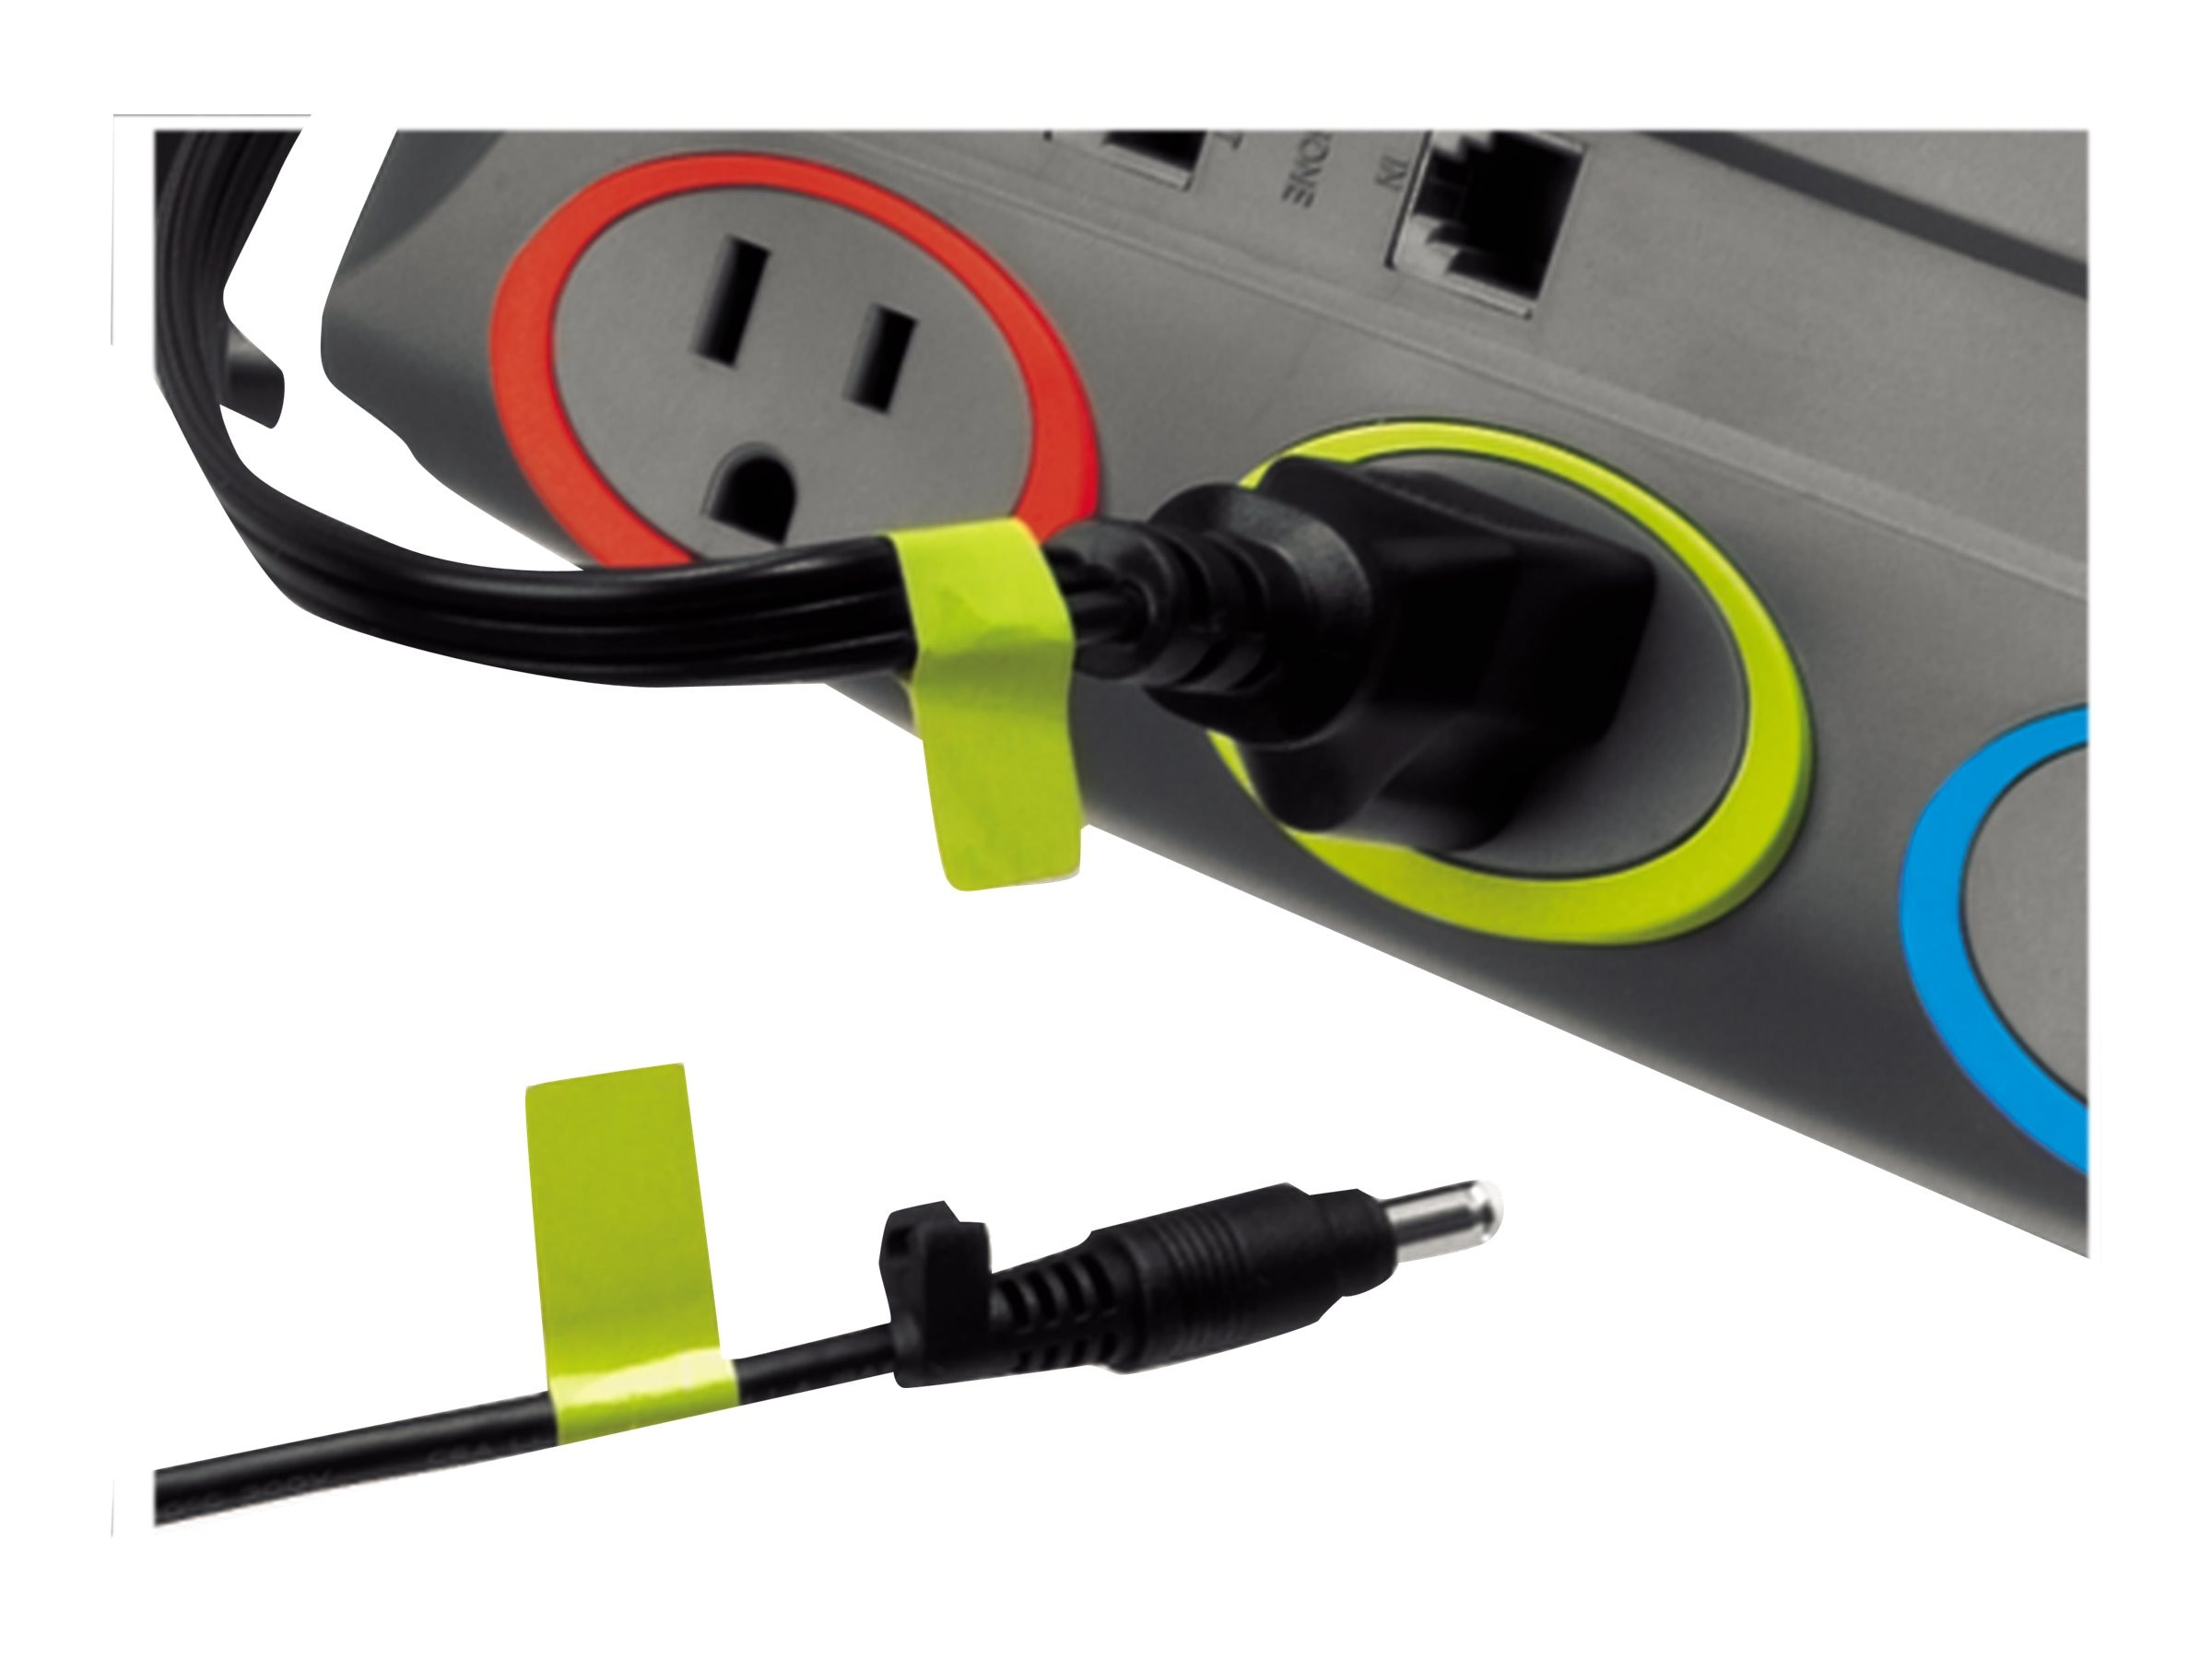 Kensington Smartsockets Premium Adapter (8) Outlets 8ft Cord 3090 Joules, Phone Line Protection, K62691NA